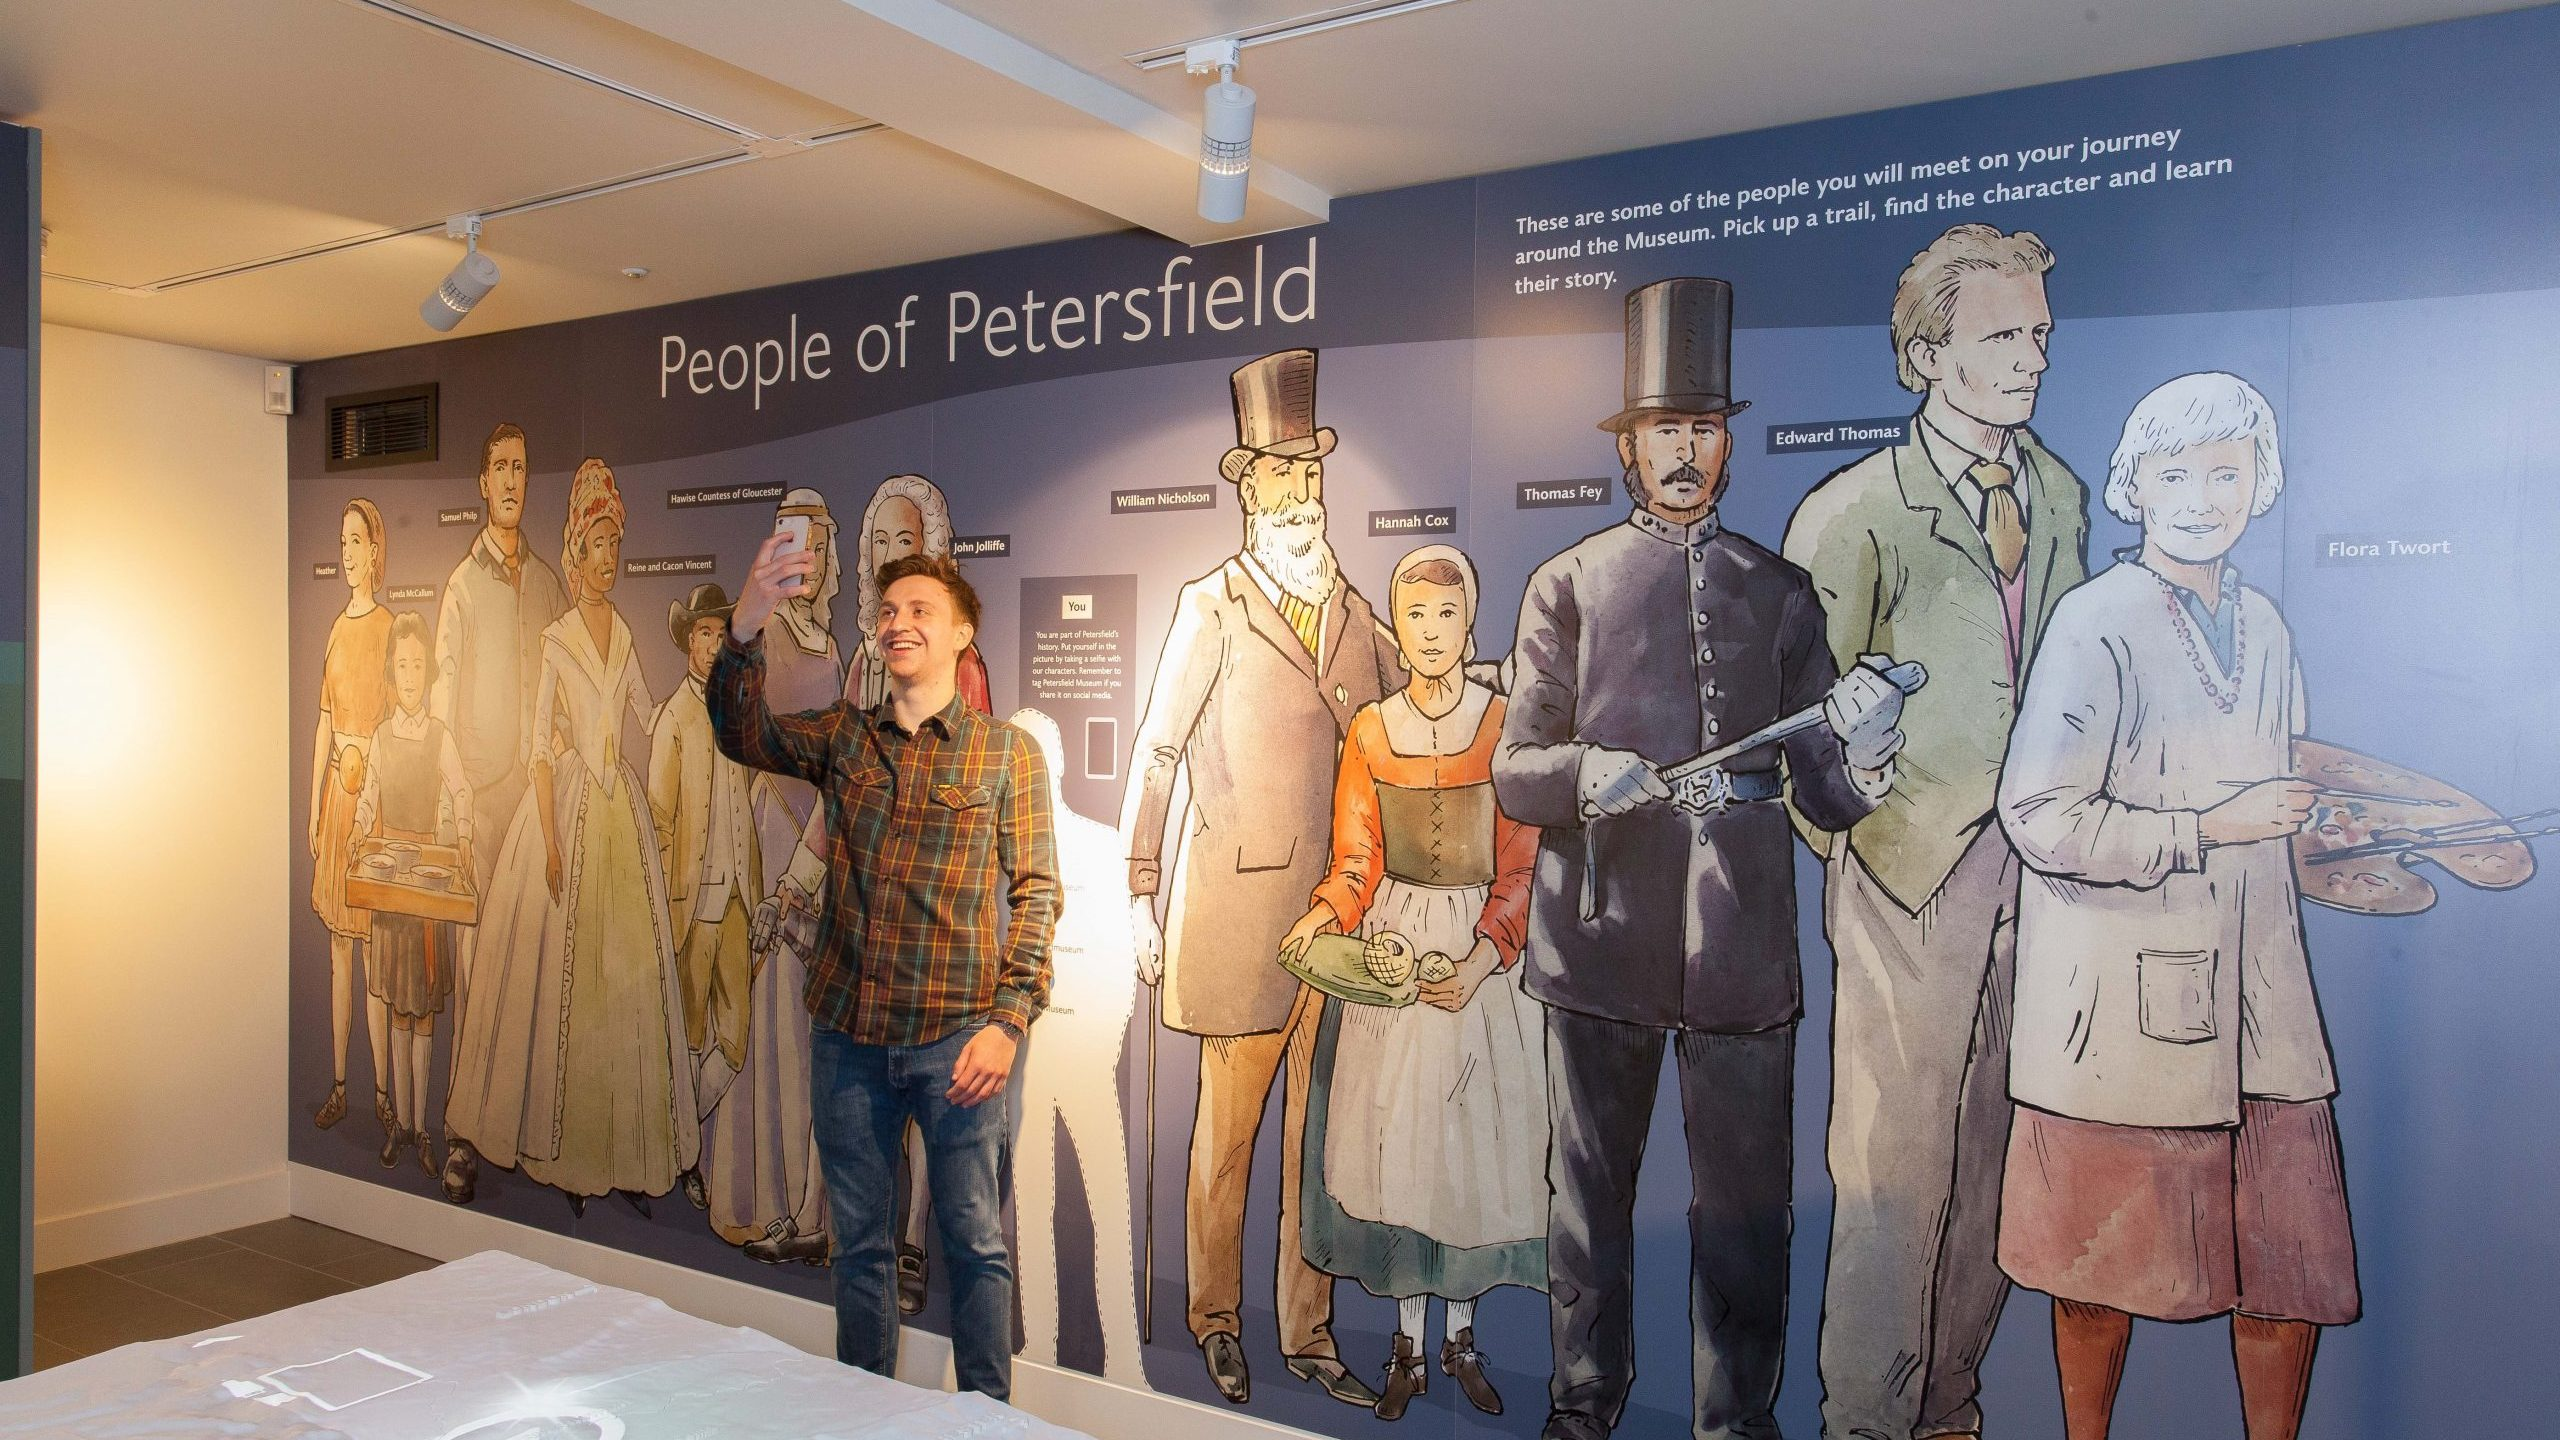 A visitor taking a selfie with a mural of some of the people of Petersfield, including artist Flora Twort and poet Edward Thomas